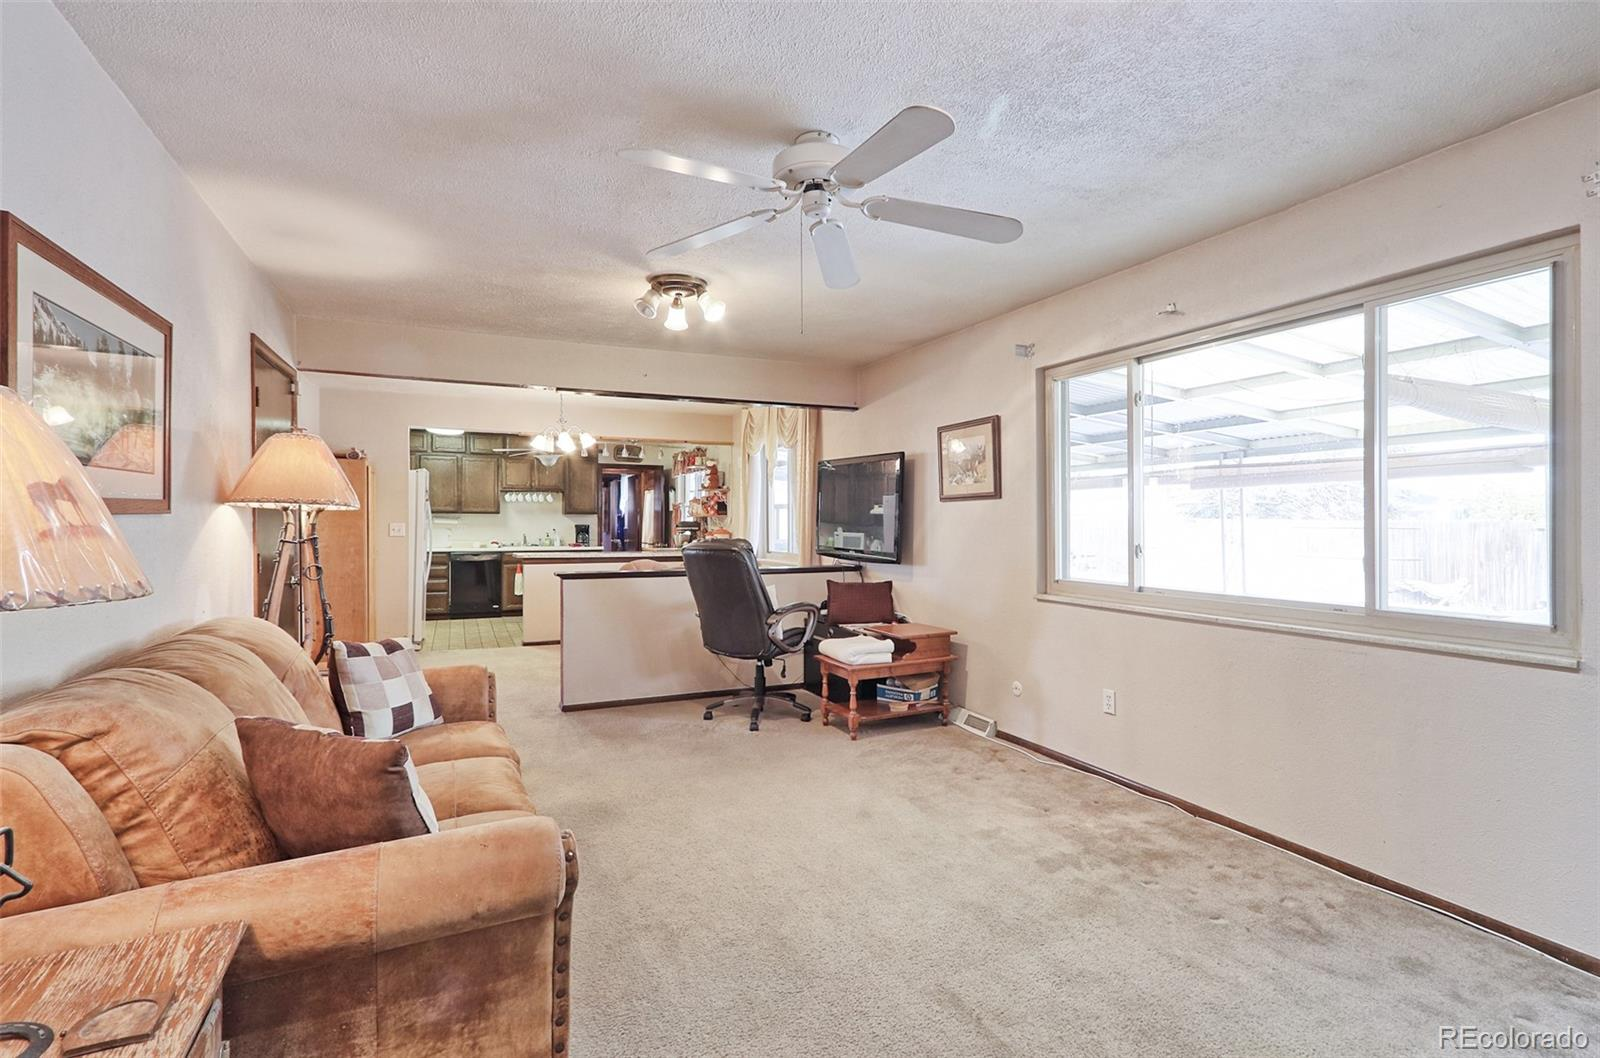 MLS# 2680395 - 5 - 4481 W 89th Way, Westminster, CO 80031